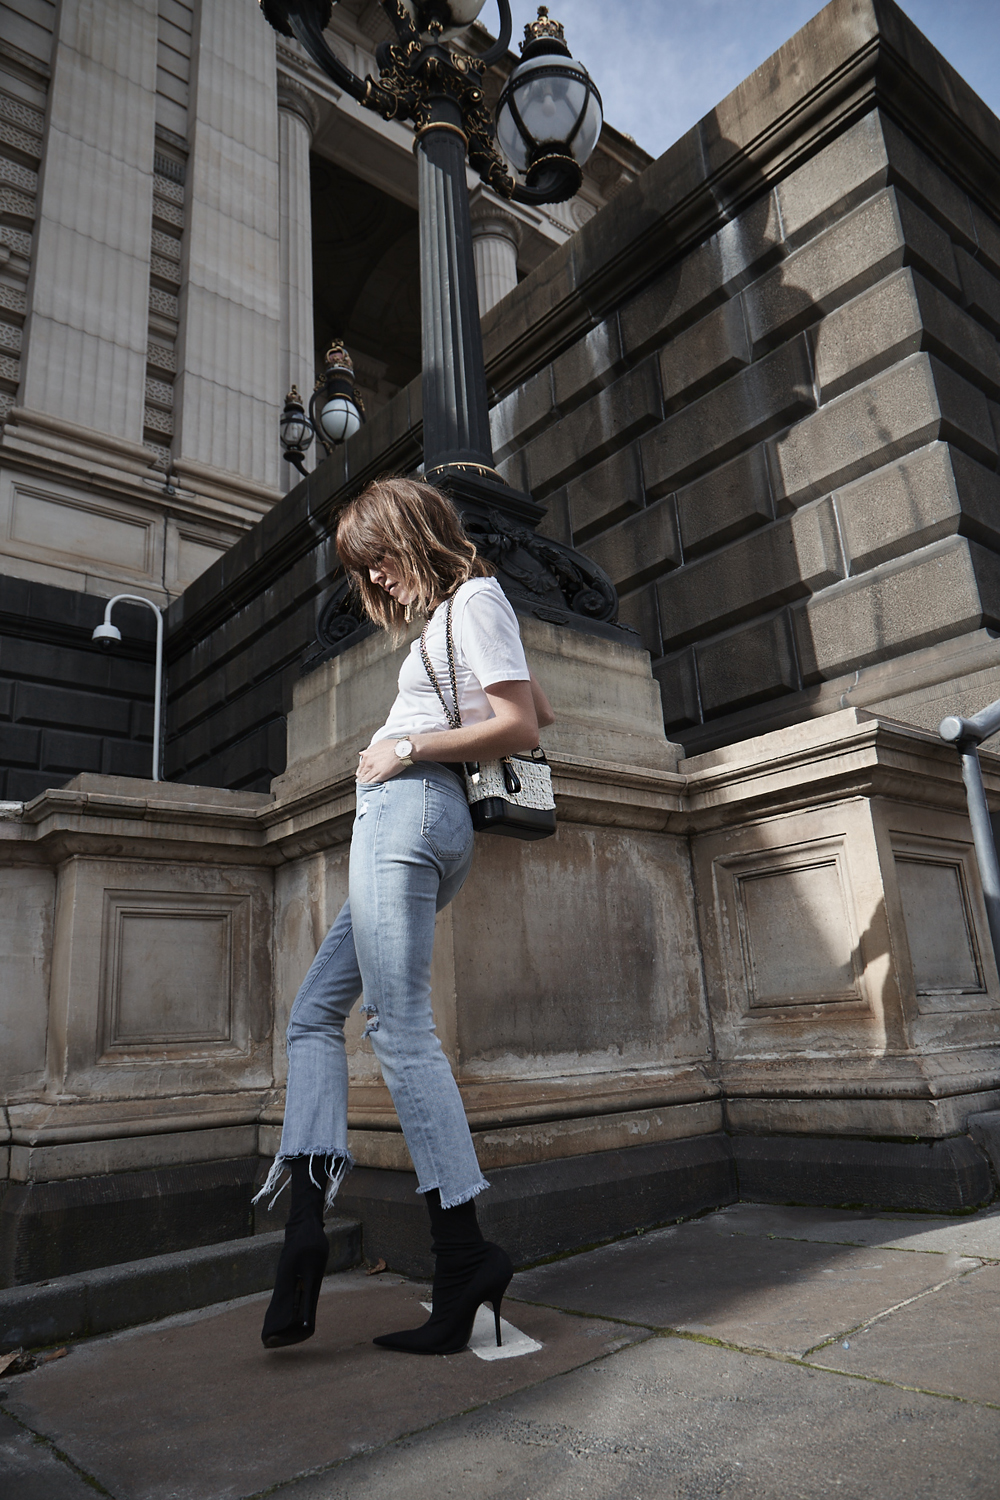 Chanel, Gabrielle, Bag, Tweed, Street Style, Amanda shadforth, melbourne, mother denim, jeans, balenciaga, knife boots